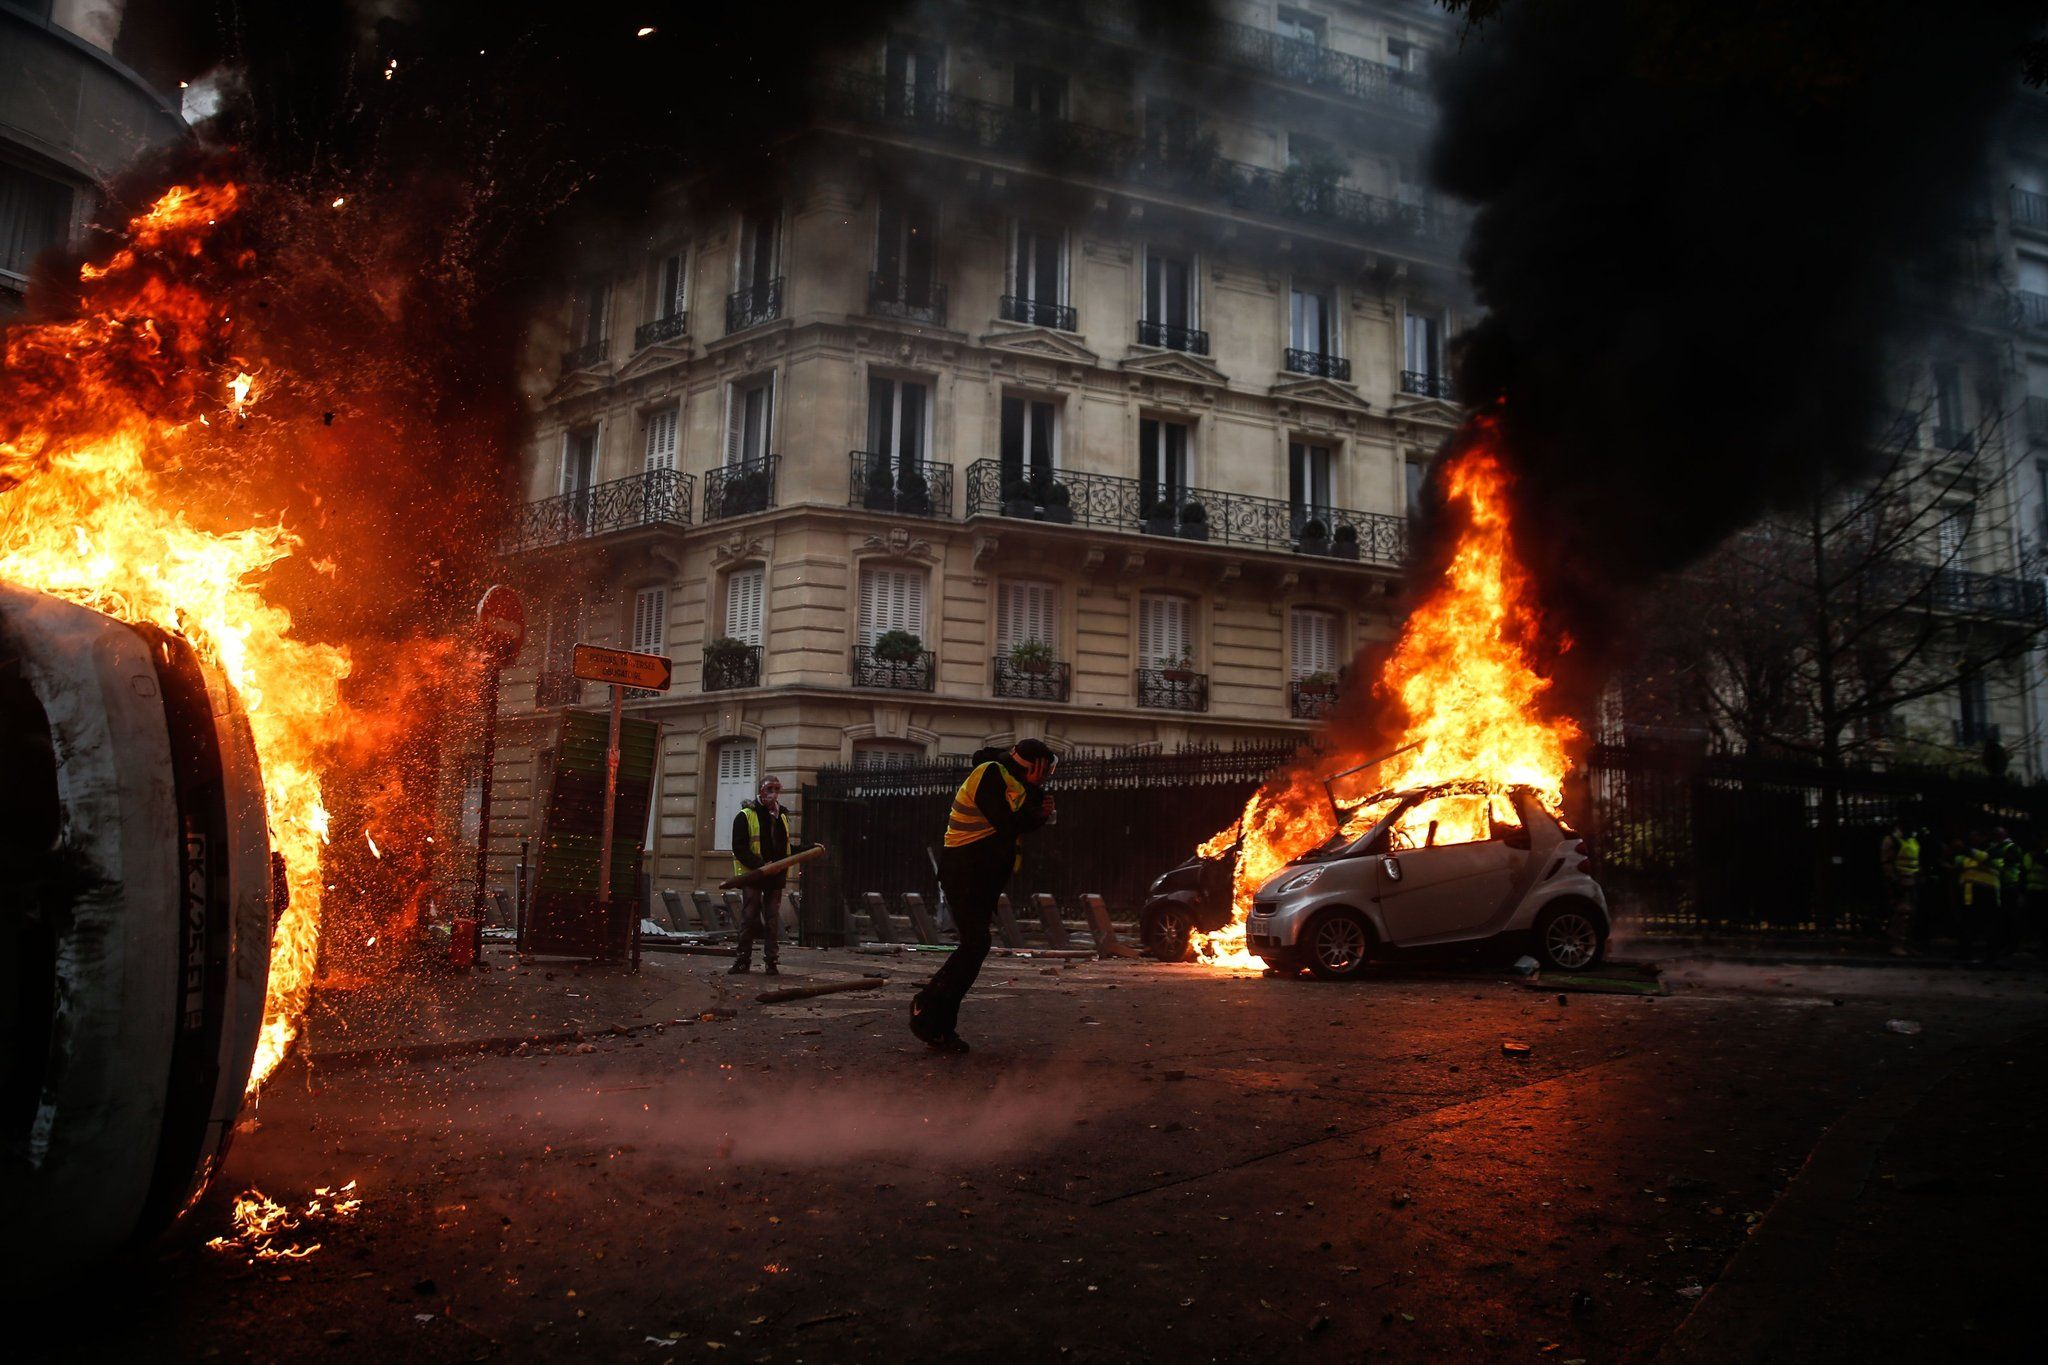 Burning cars from a protest in Paris on Saturday [2048 x